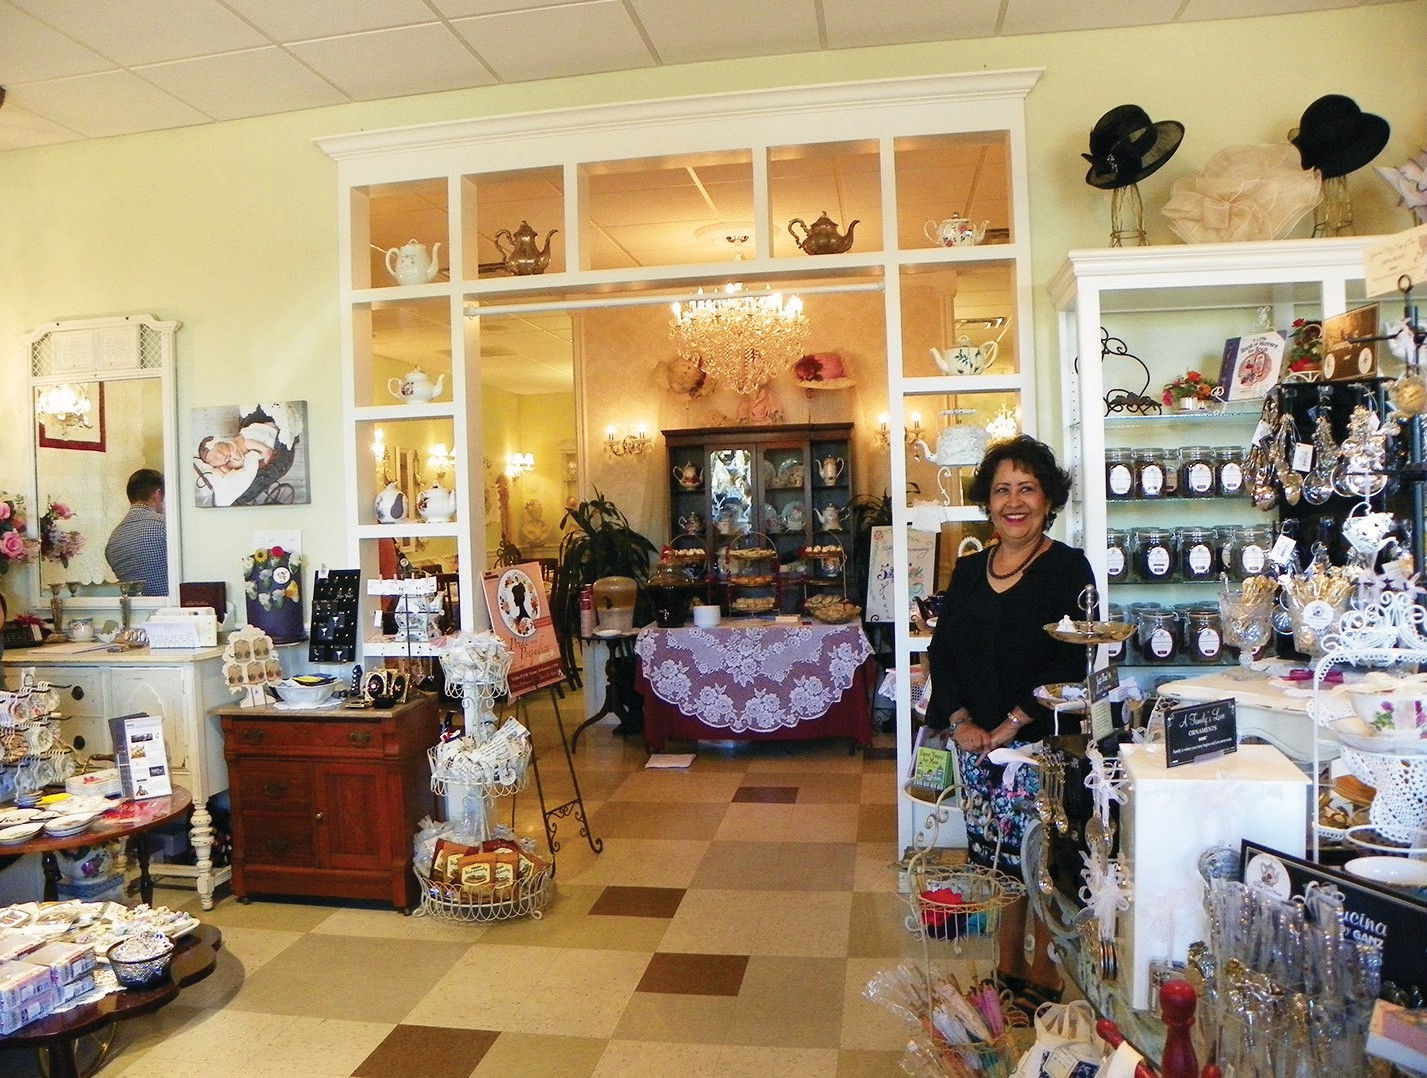 Grand Tea Room owner Louisa Magoon in the front lobby of the shop.